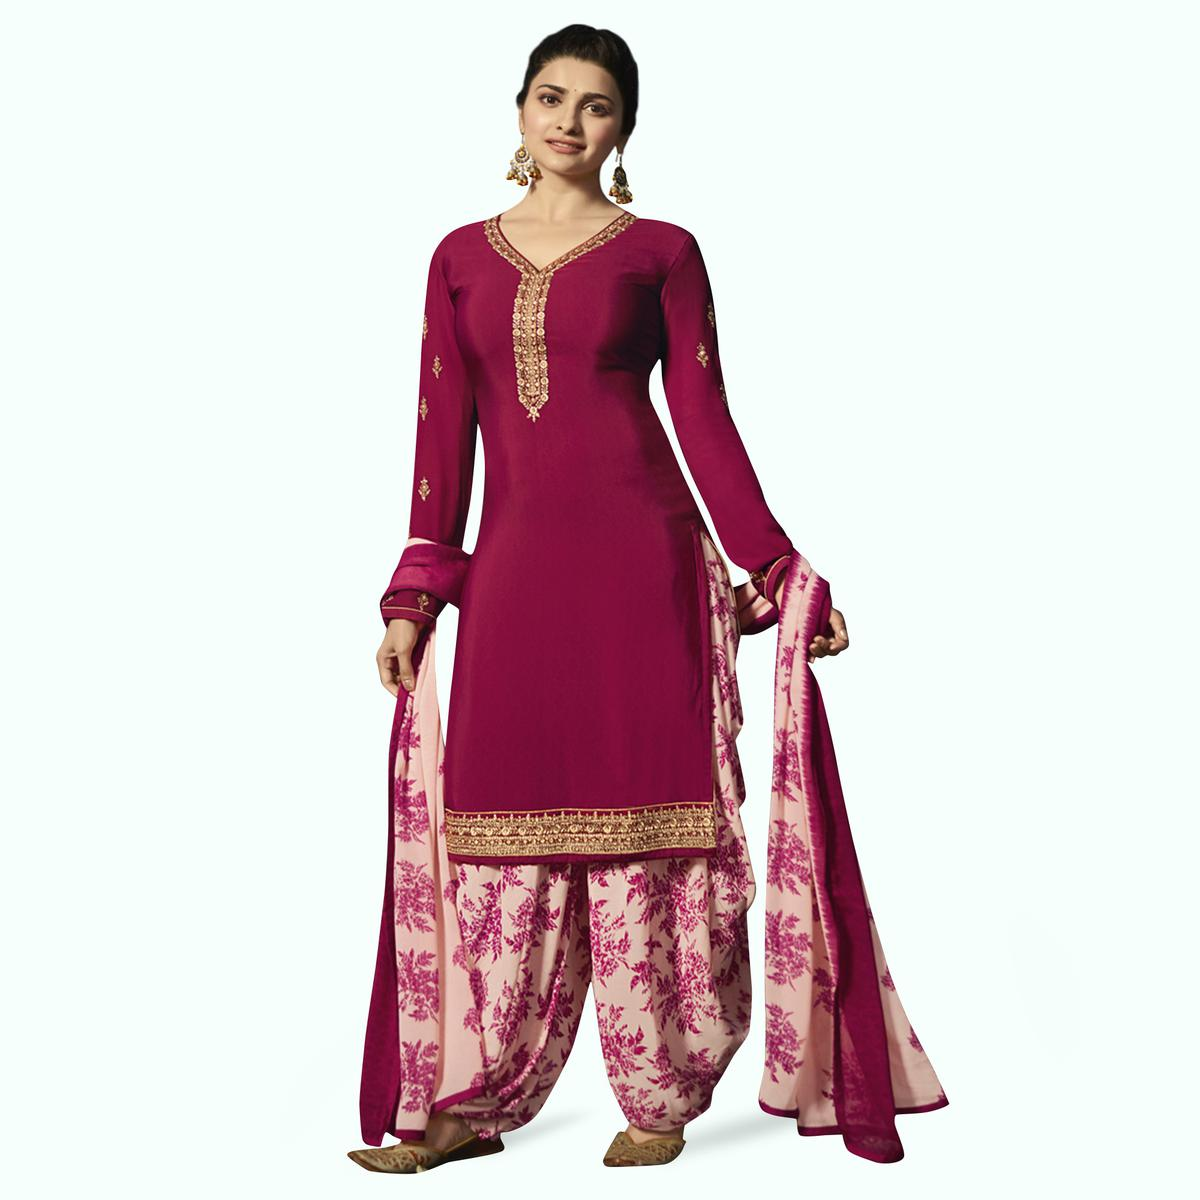 Gleaming Dark Magenta Pink Colored Partywear Embroidered Crepe Patiala Suit